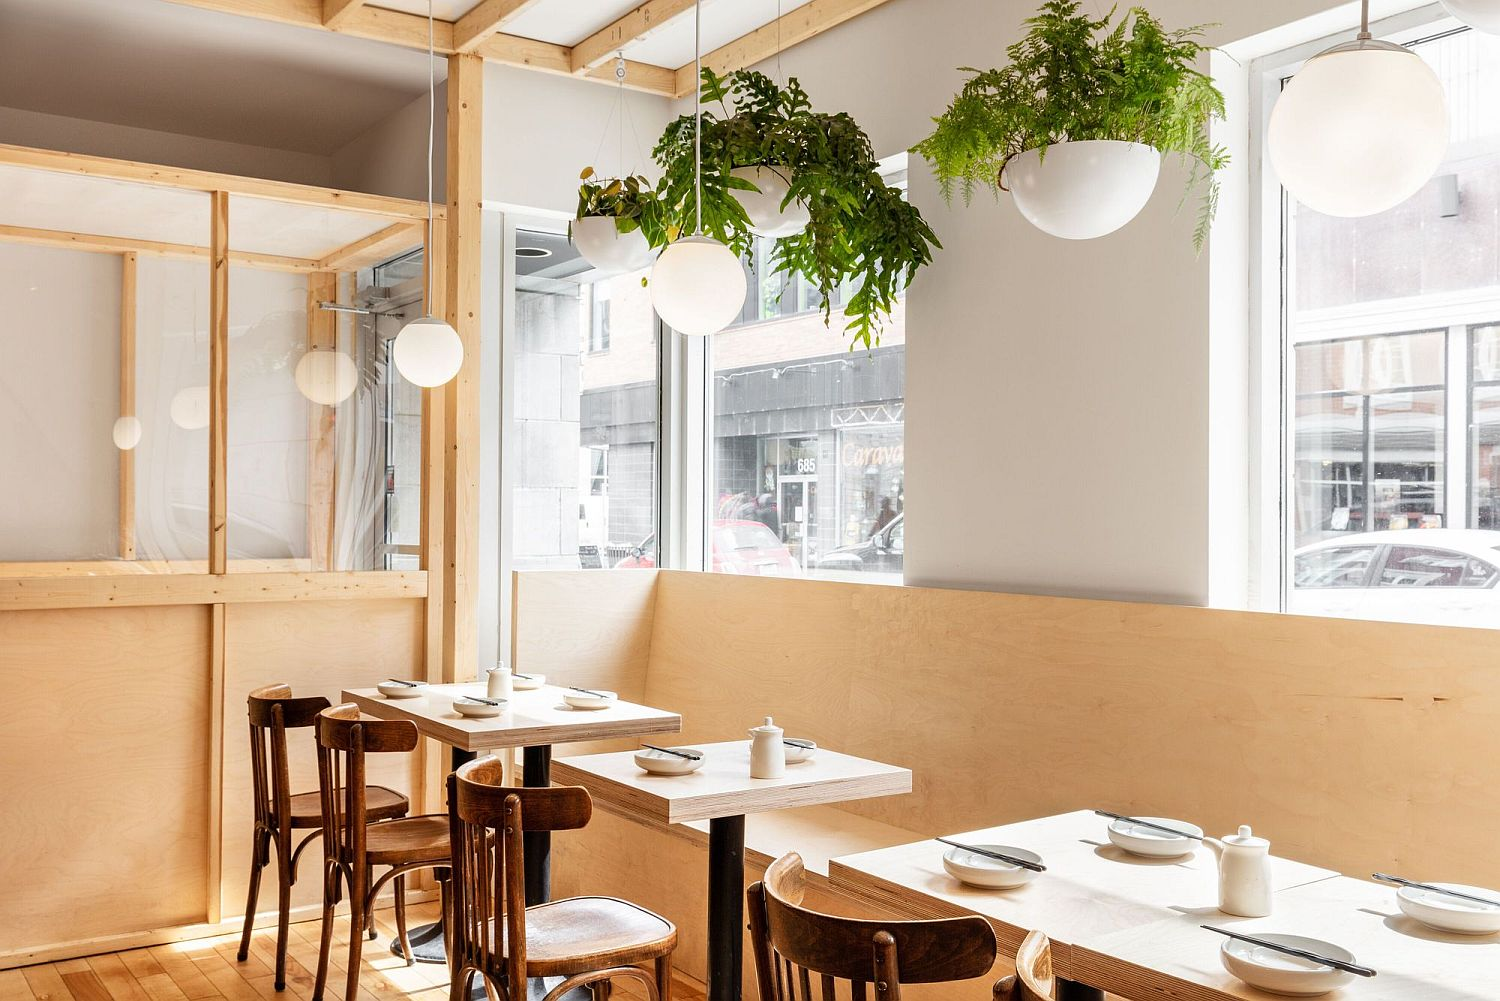 Large windows bring in ample light illuminating the diner